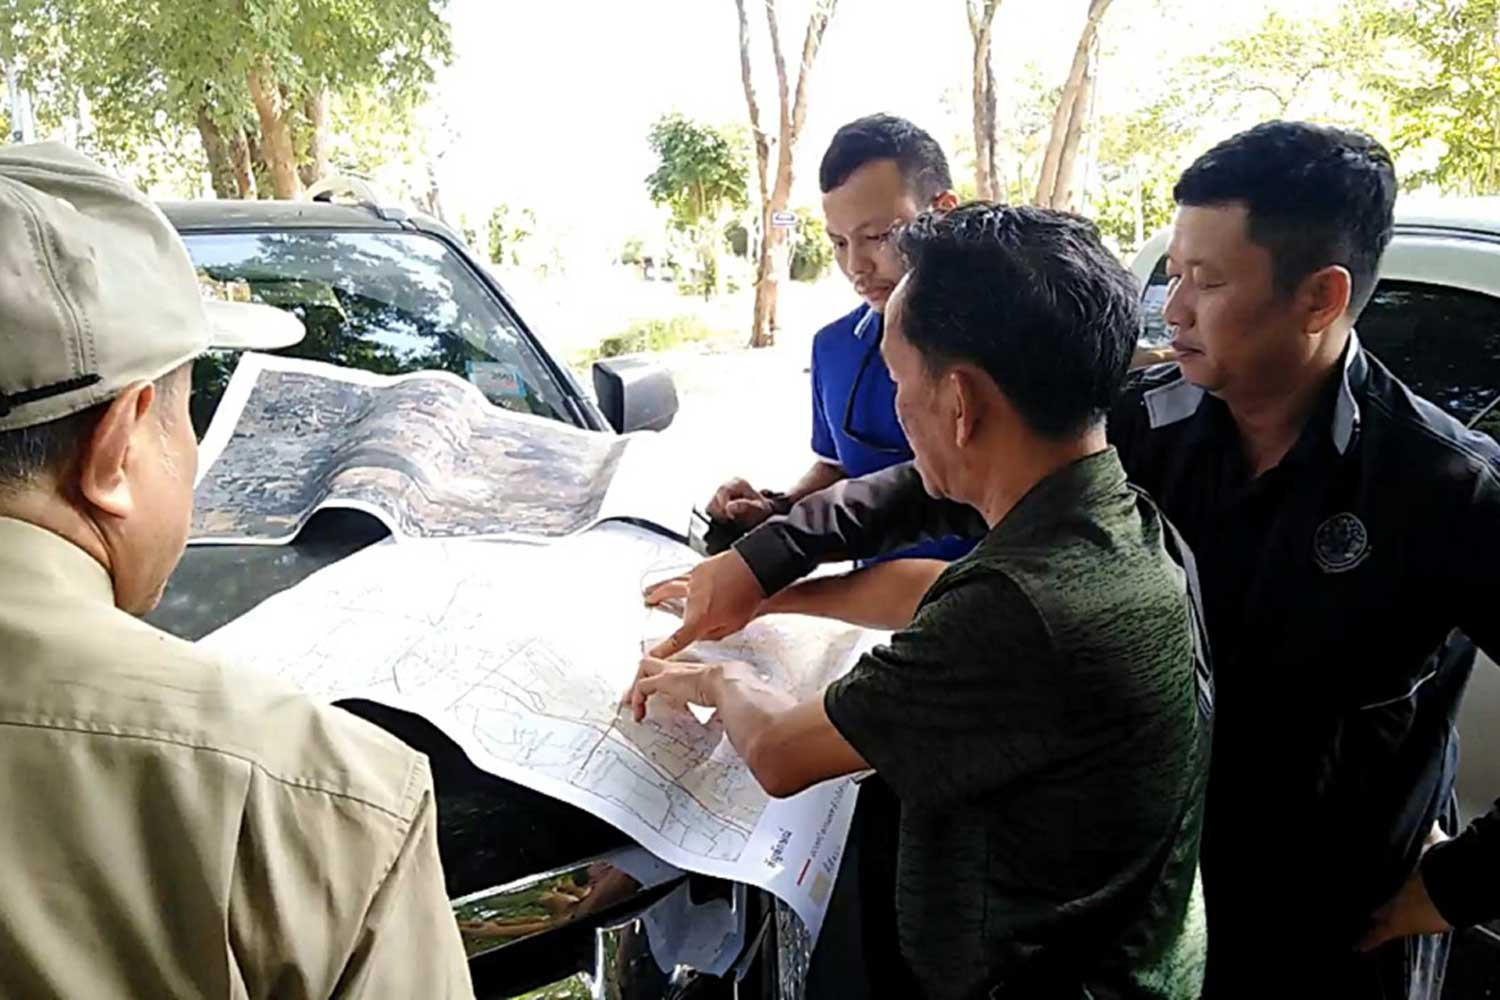 Officials check the land ownership legitimacy of the controversial chicken farm of Palang Pracharath Party MP Pareena Kraikupt in Ratchaburi province on Thursday. (Photo by Saichon Srinuanchan)